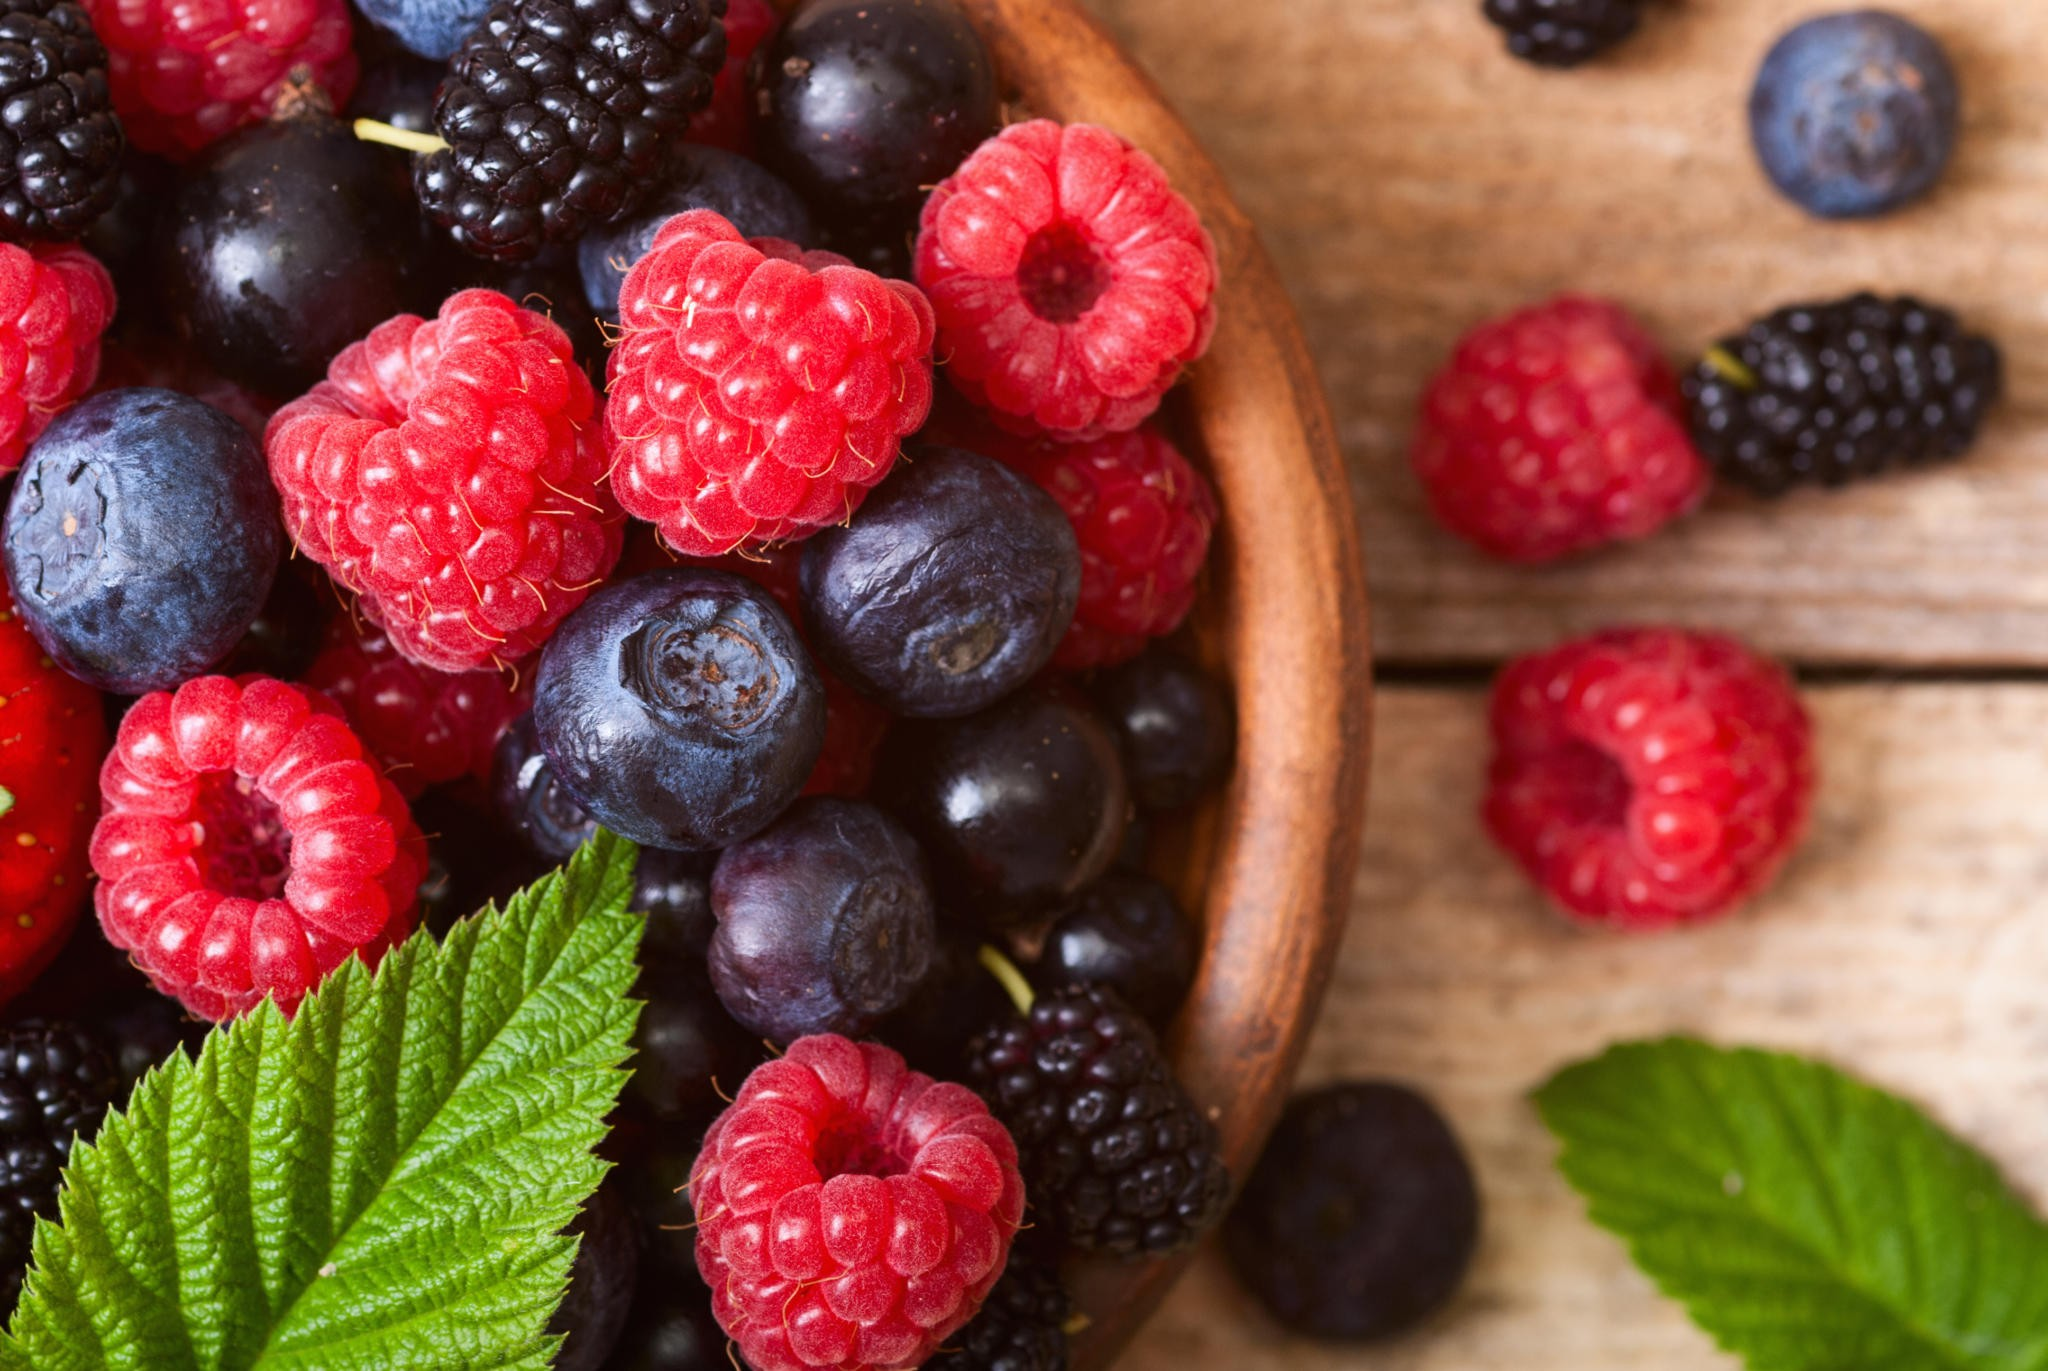 5 Berry Recipes to Add Color to Every Meal